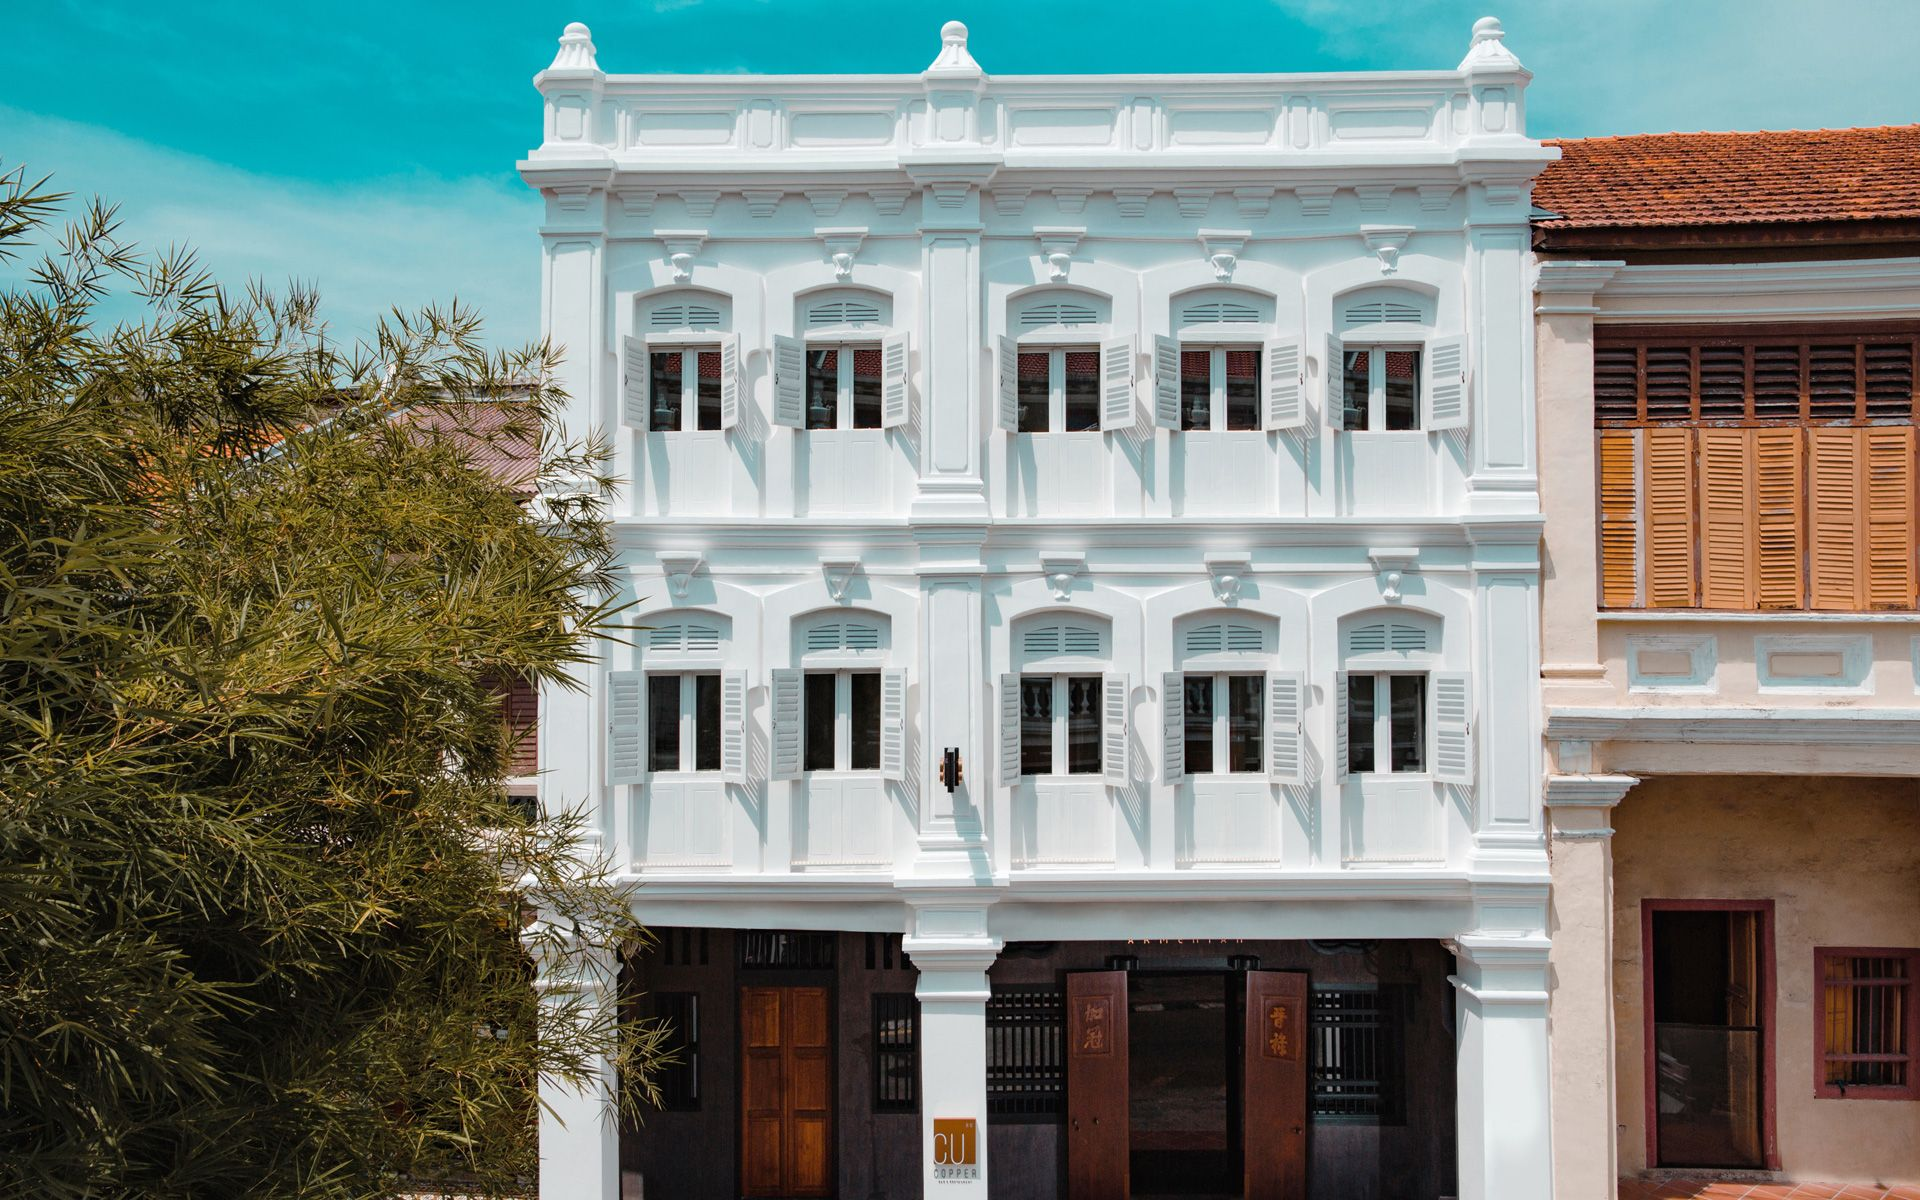 10 Boutique Hotels For A Pinterest-Perfect Stay In Penang